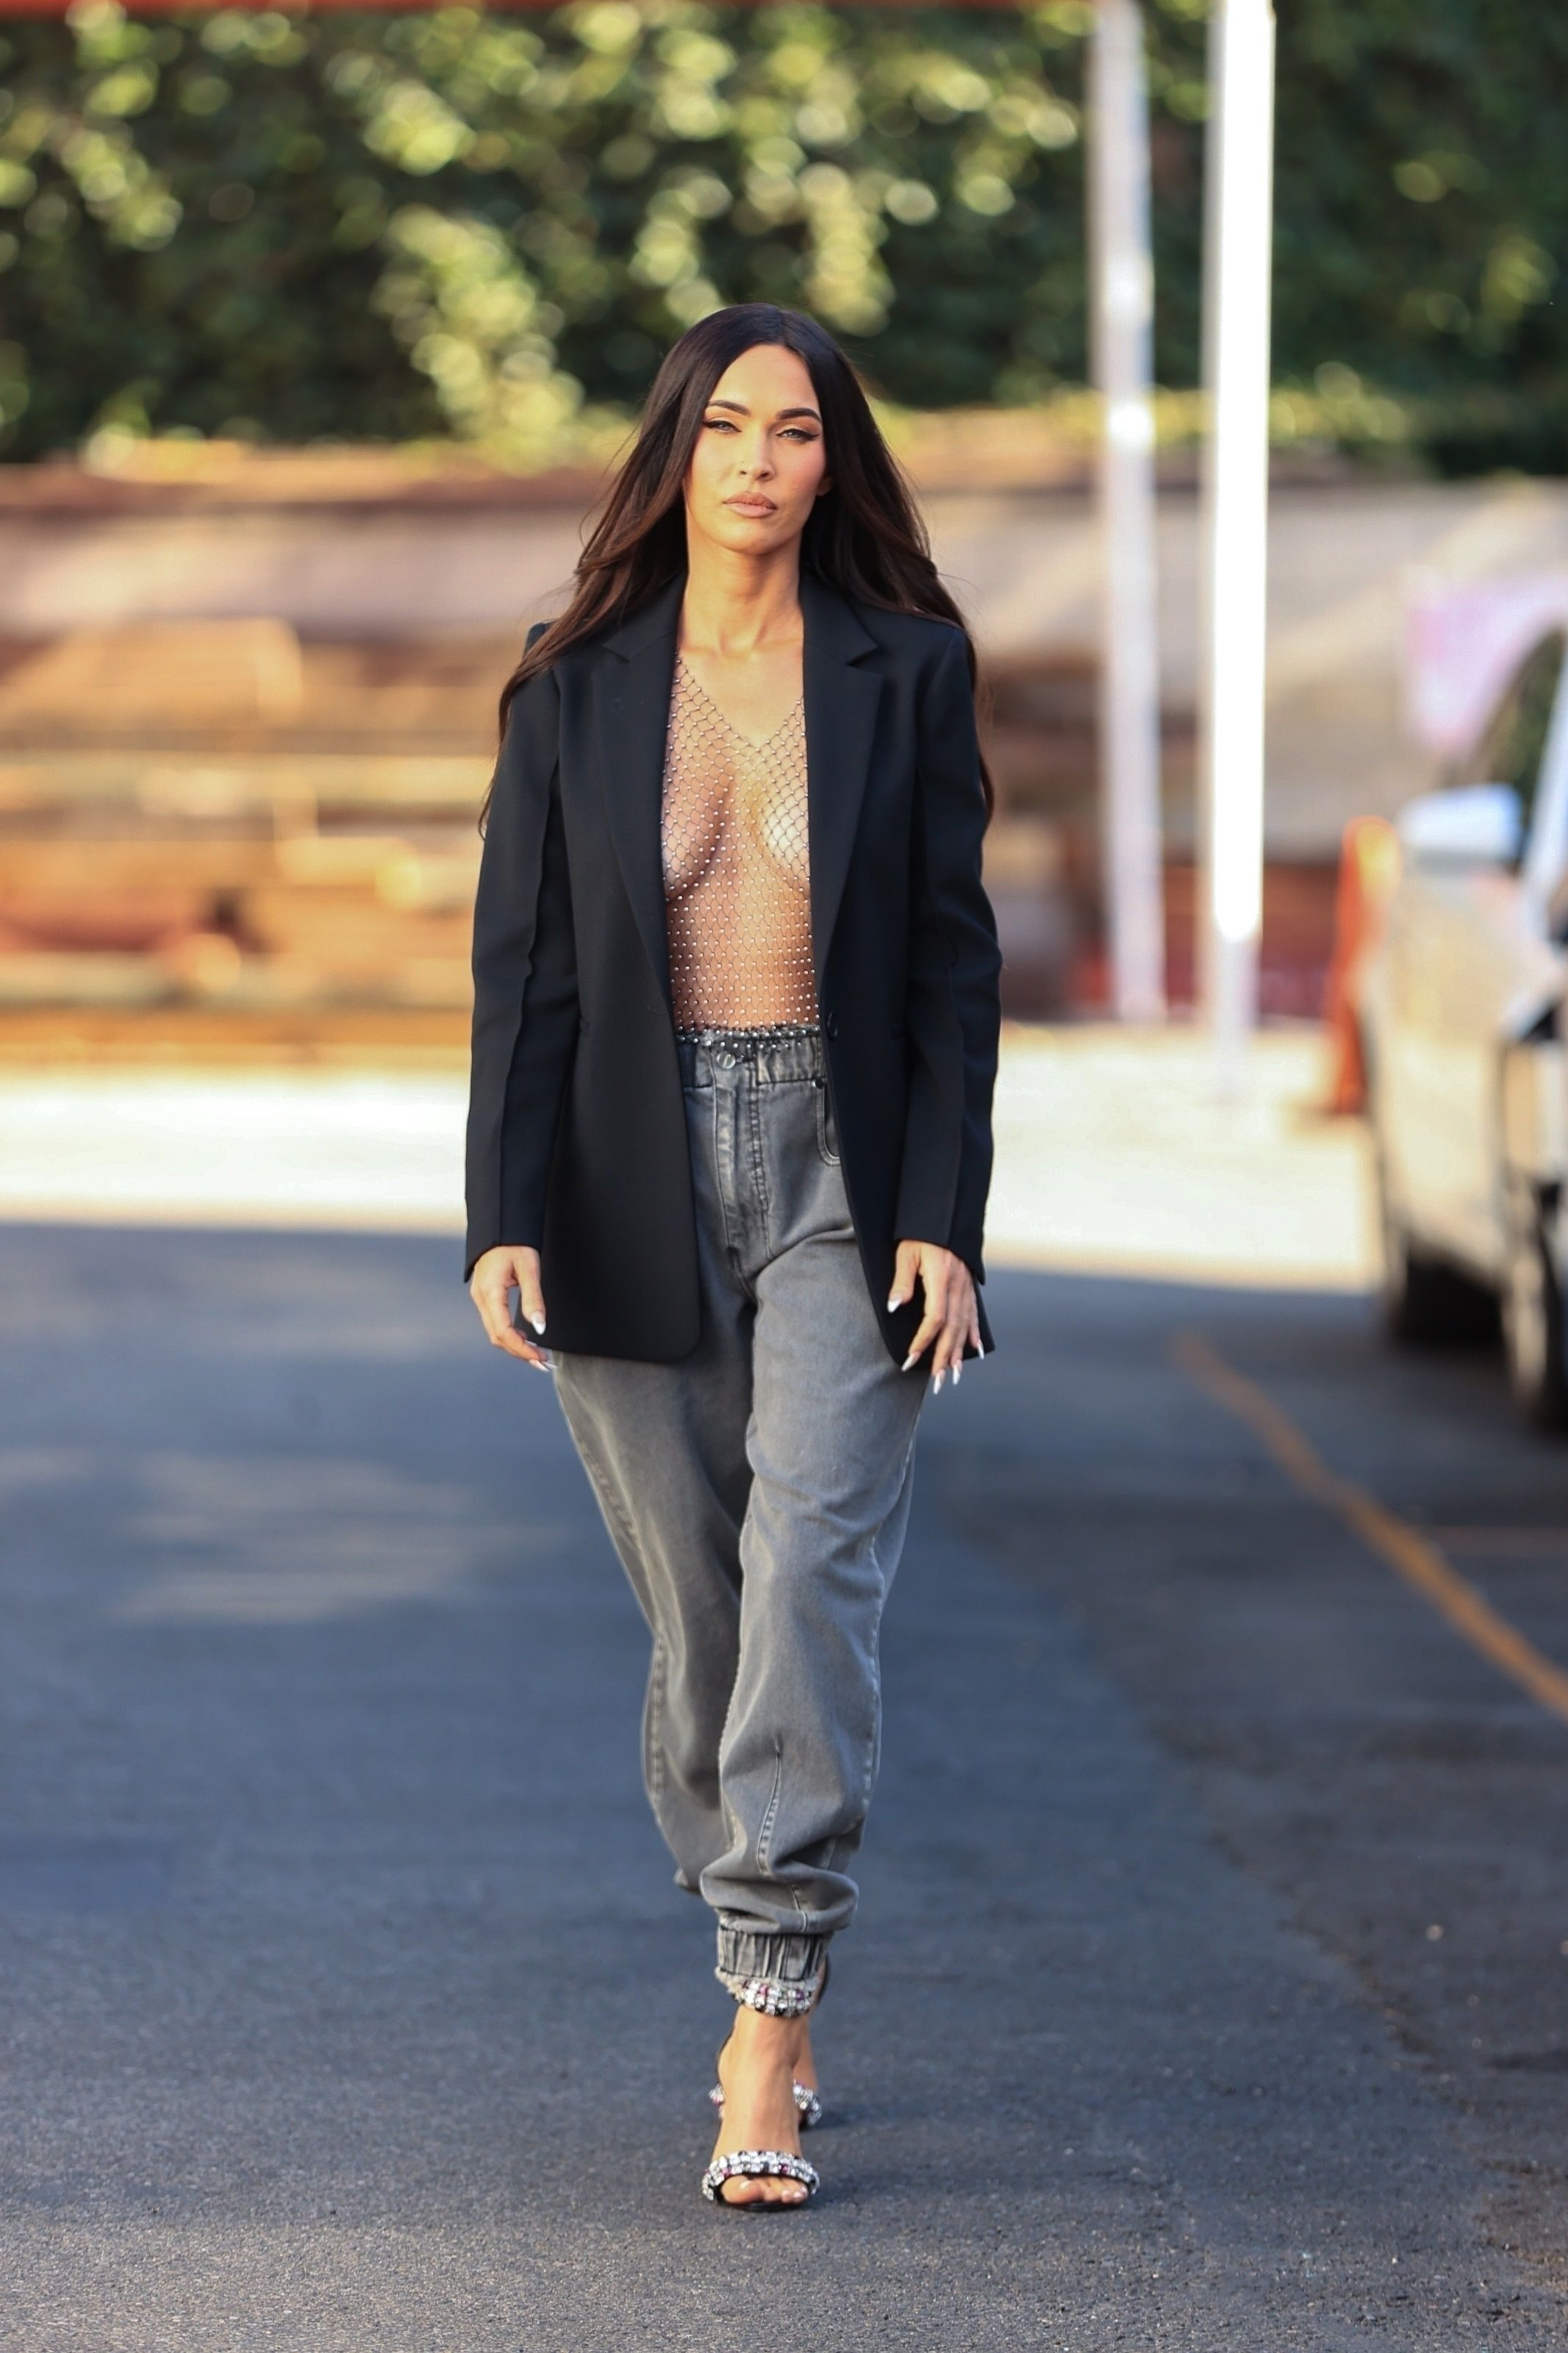 Megan Fox Went Out in an Open Blazer and a Completely See-Through Net Top